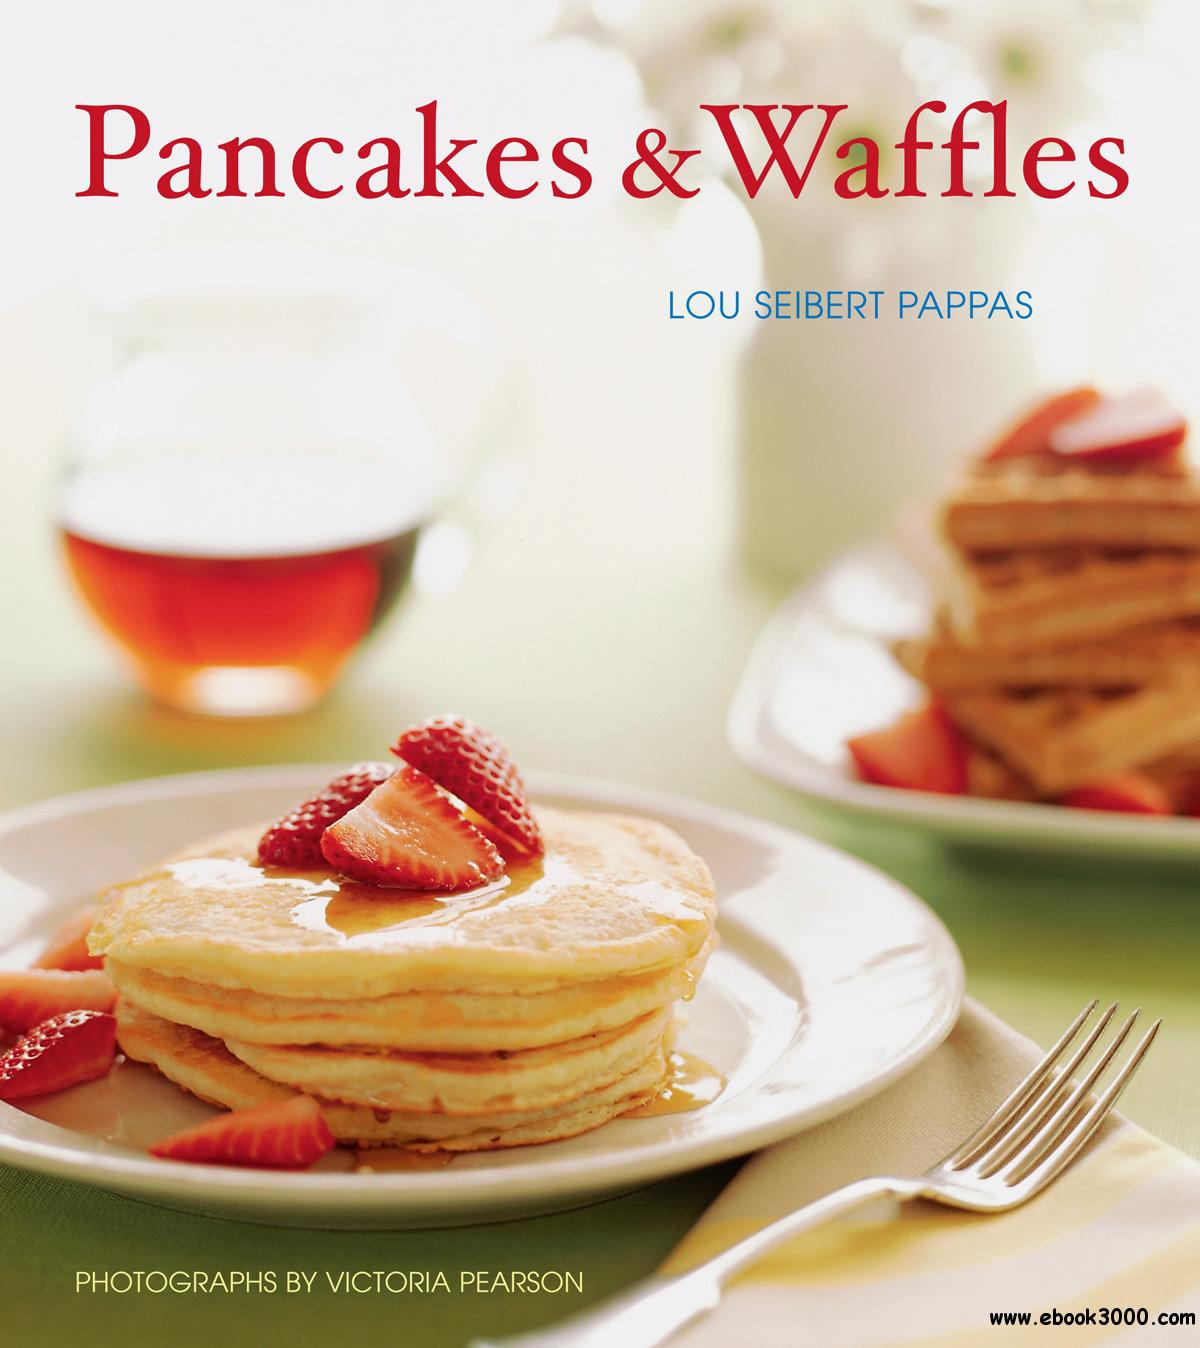 Pancakes And Waffles free download